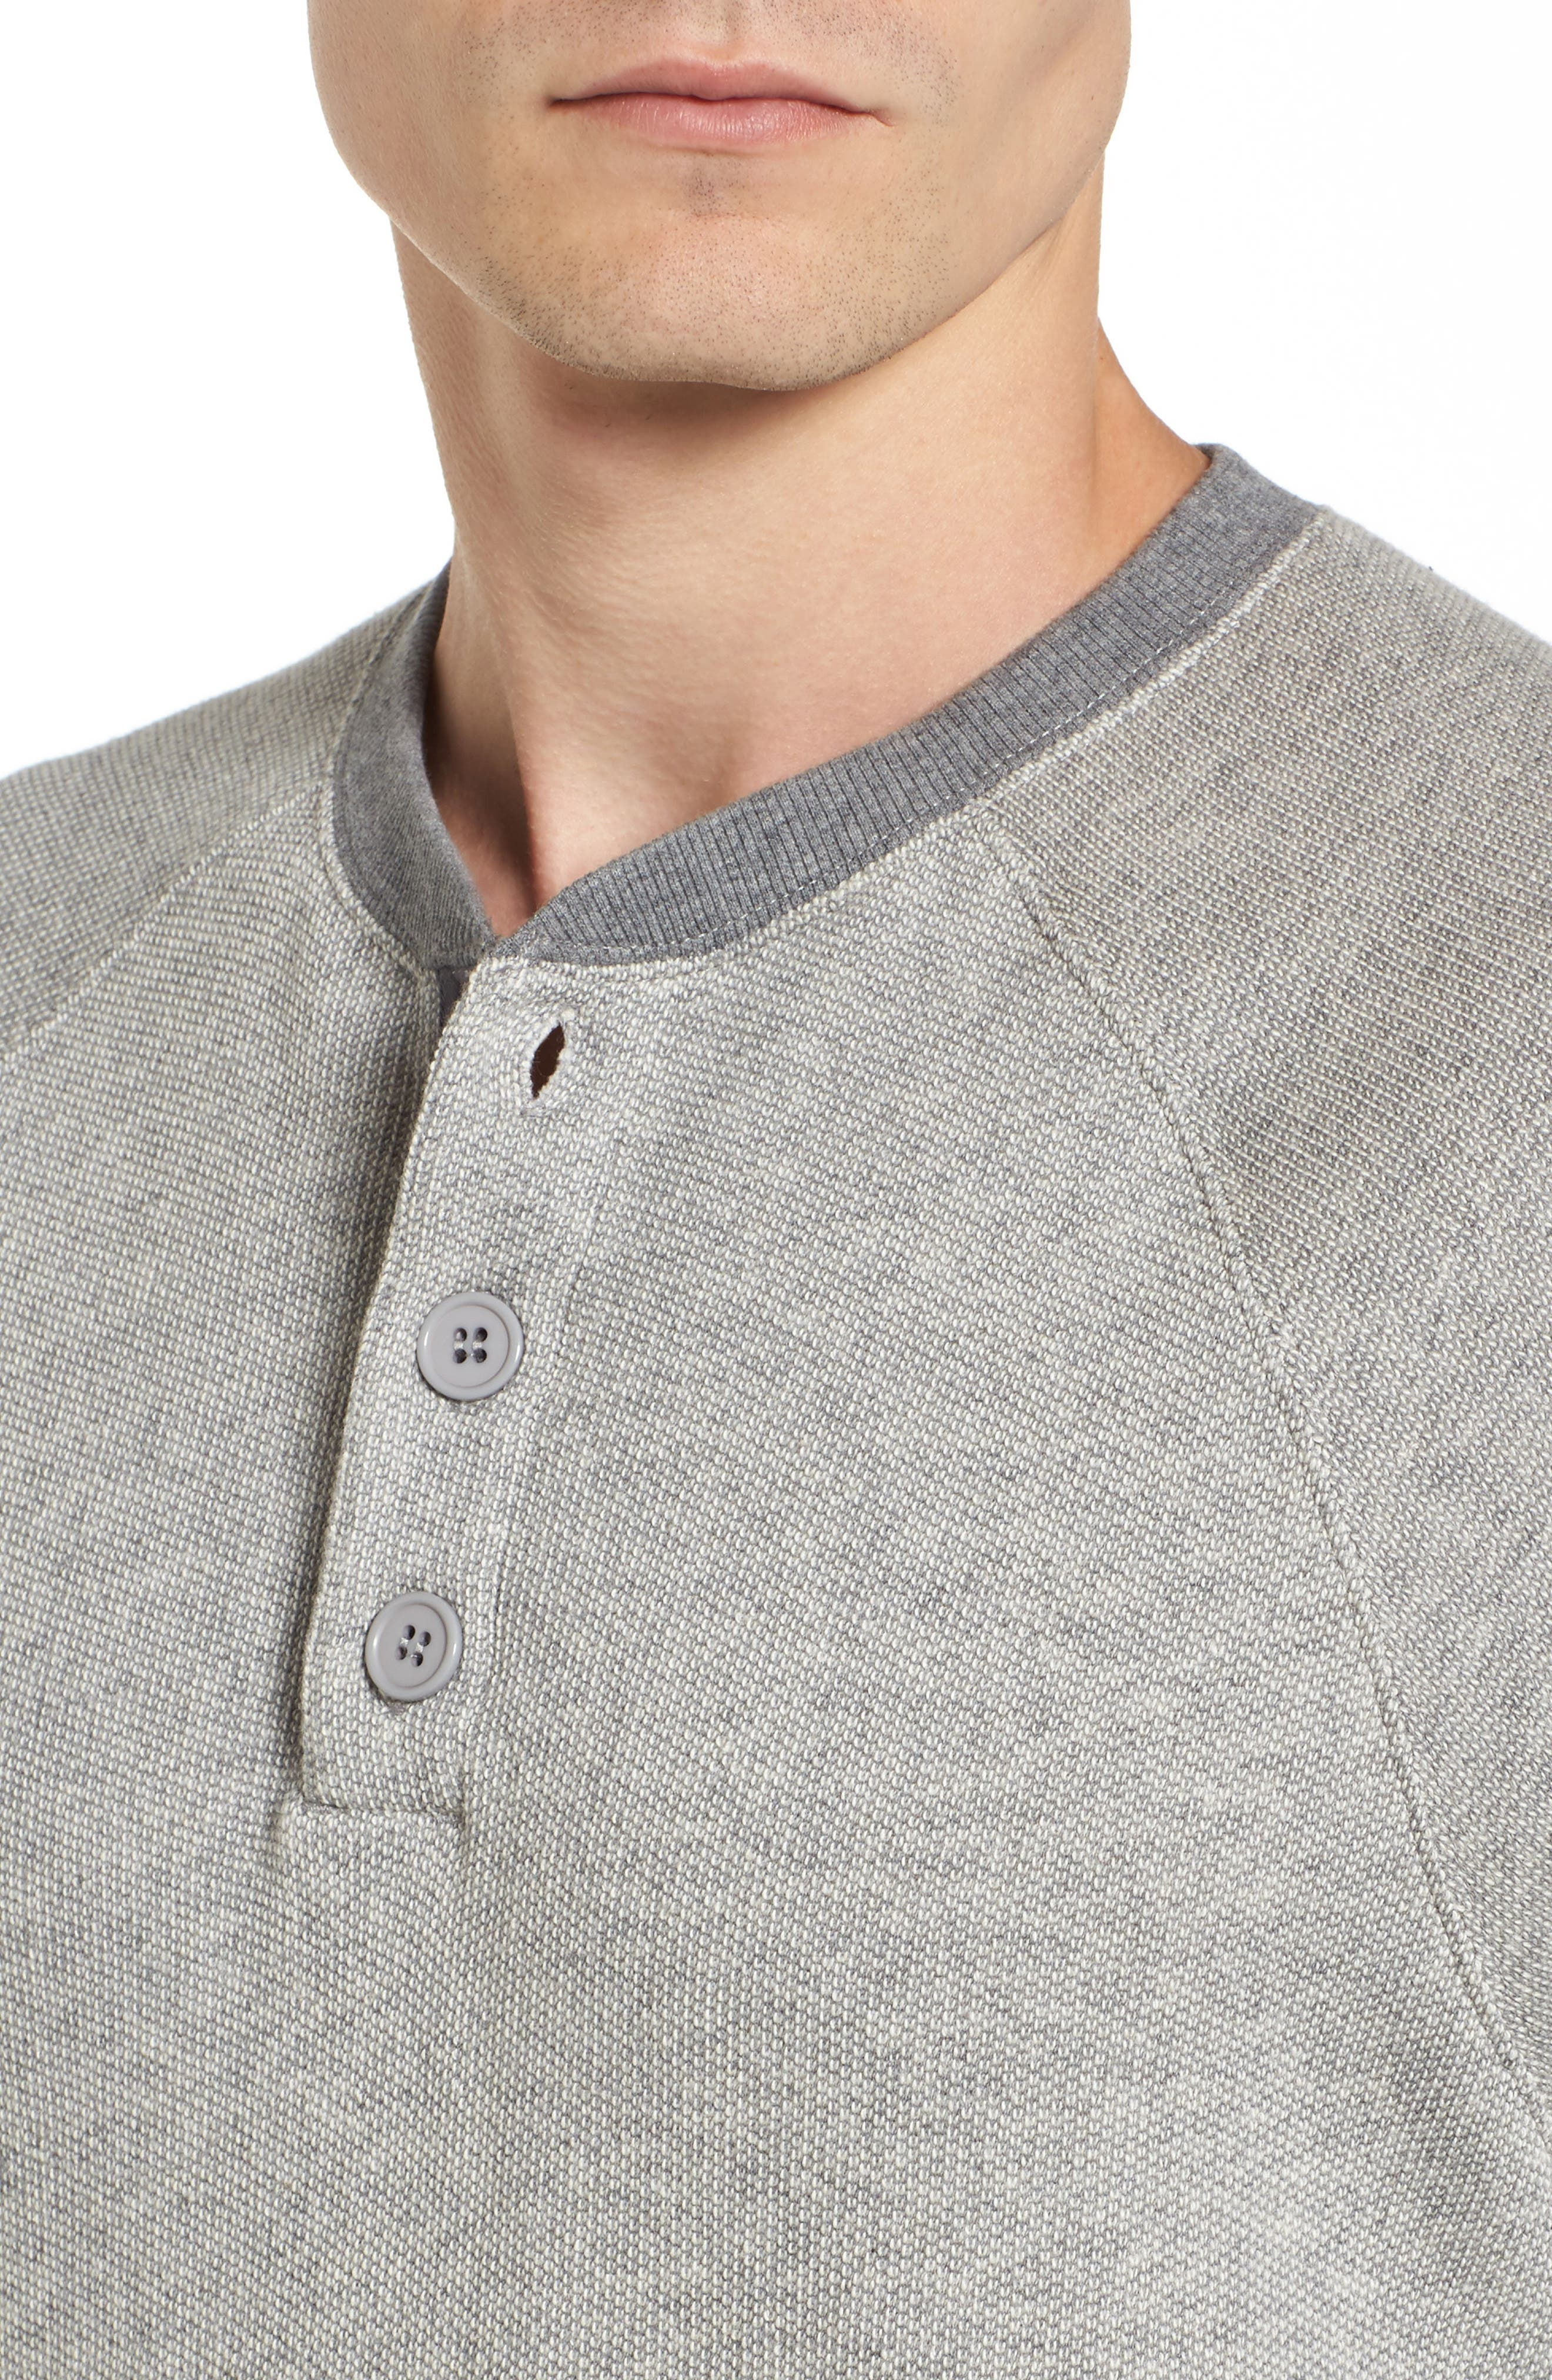 Capo Henley Pullover,                             Alternate thumbnail 4, color,                             051